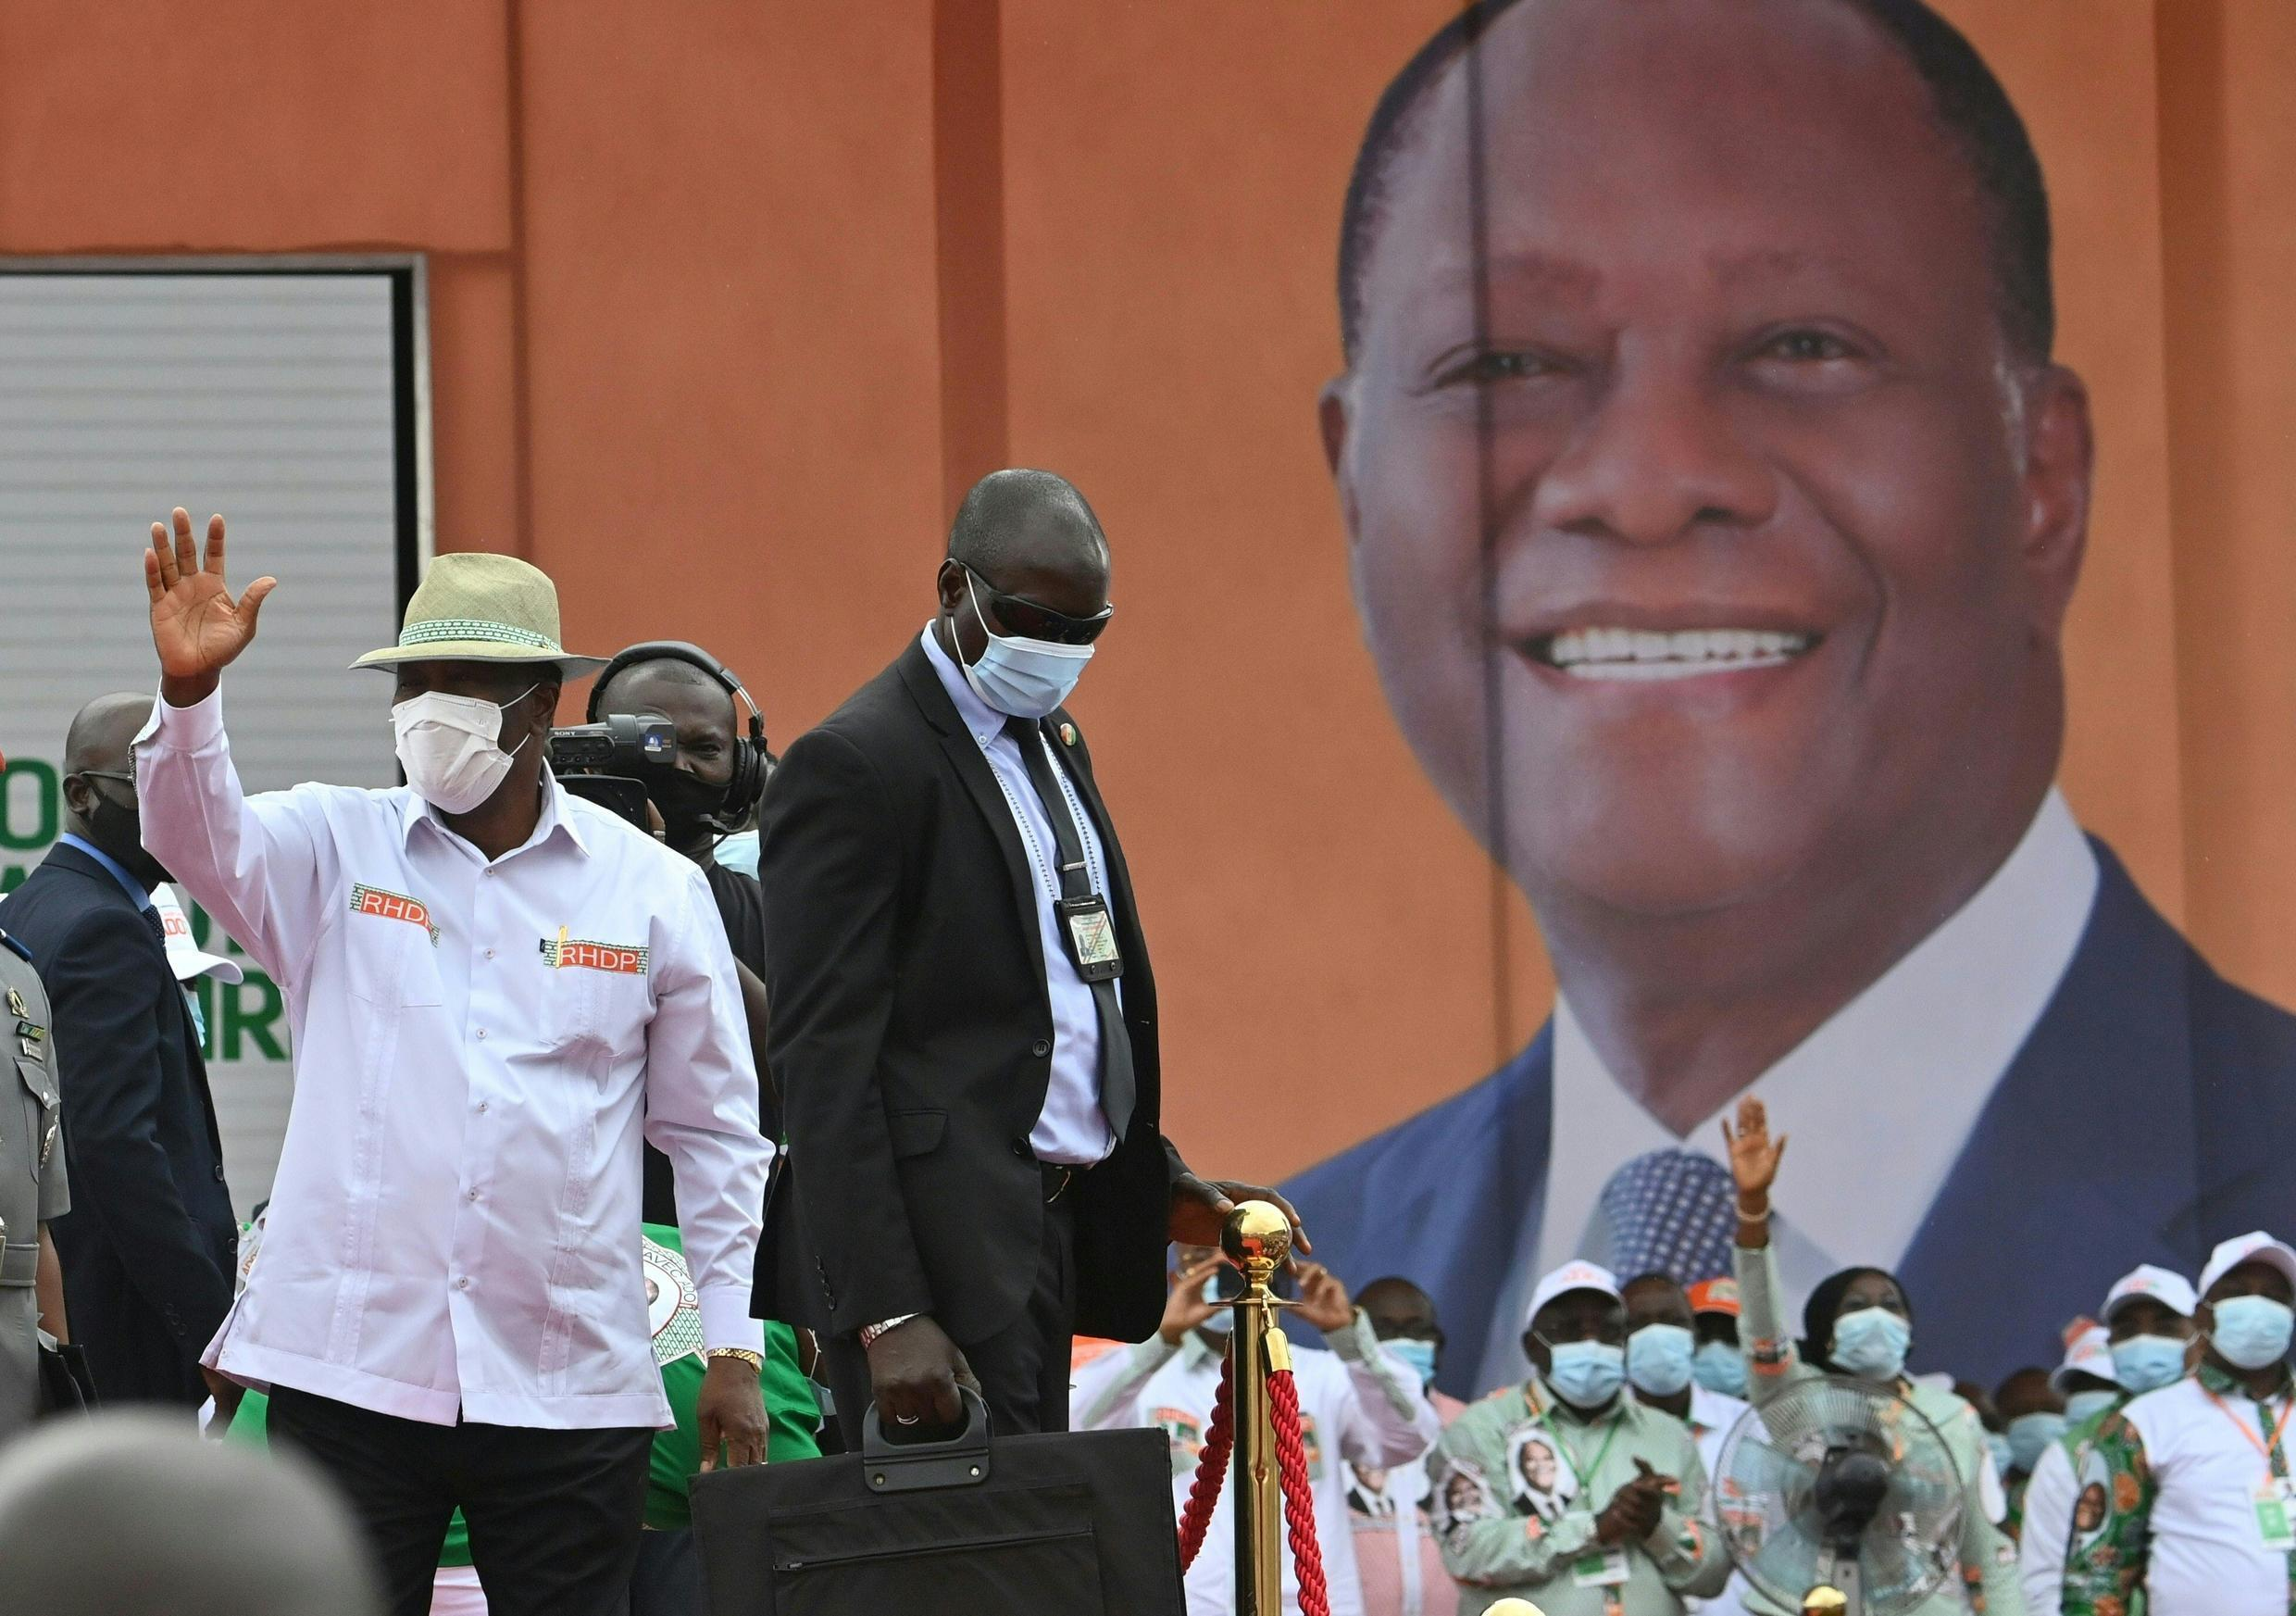 Ivory Coast President Alassane Ouattara was nominated by his party to run for president in October